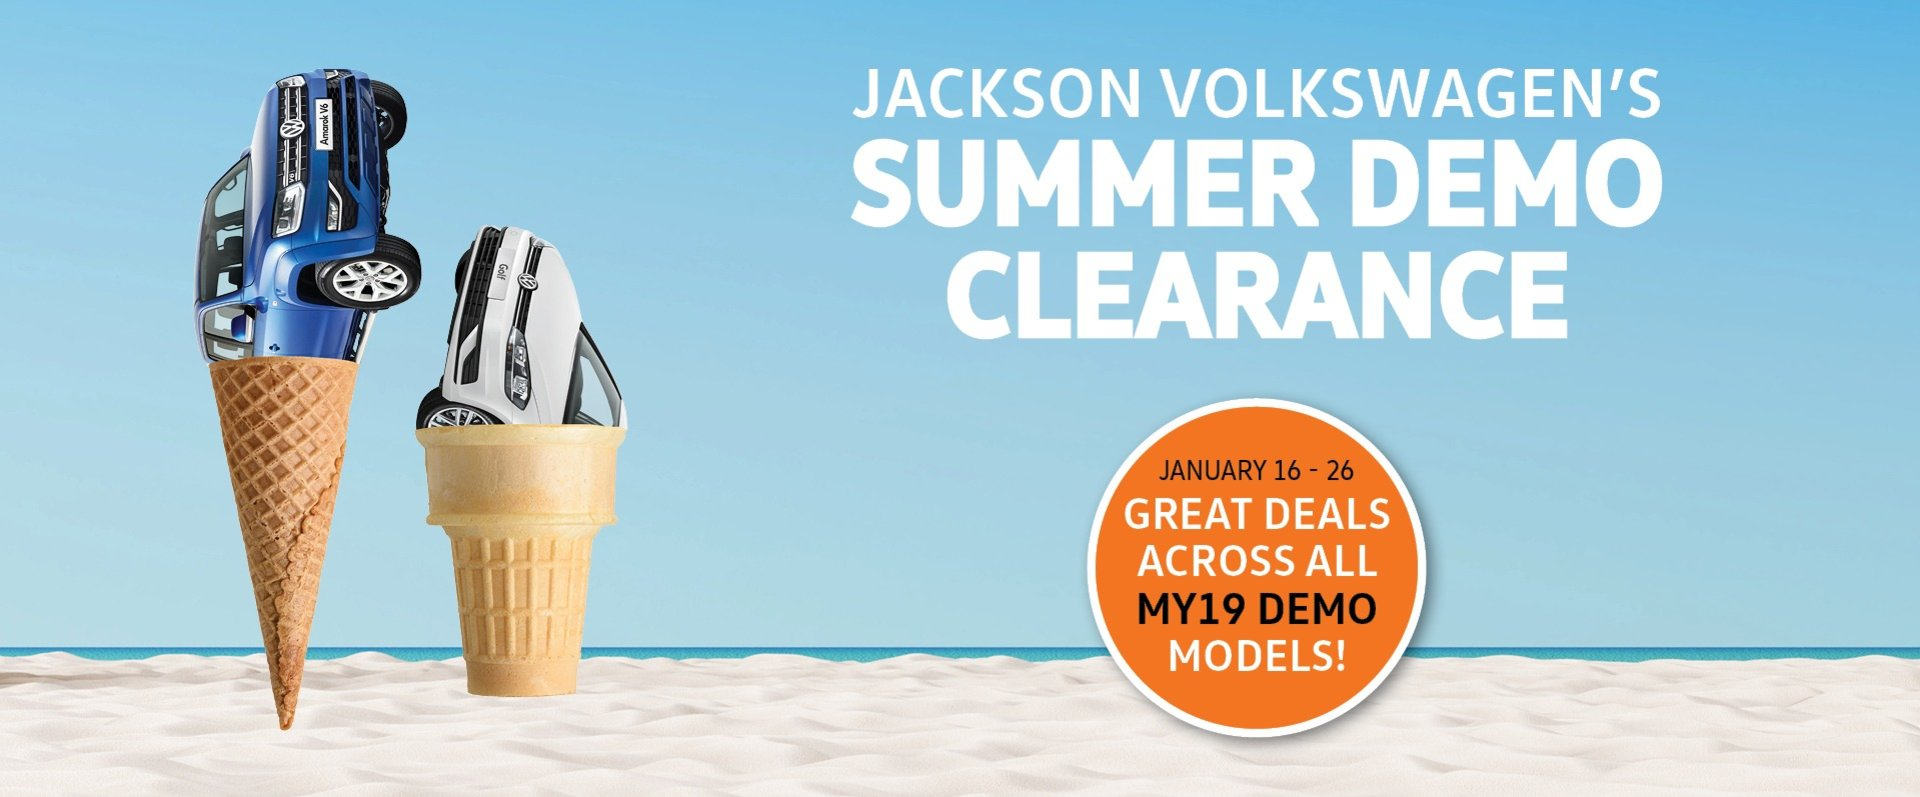 Summer Demo Clearance